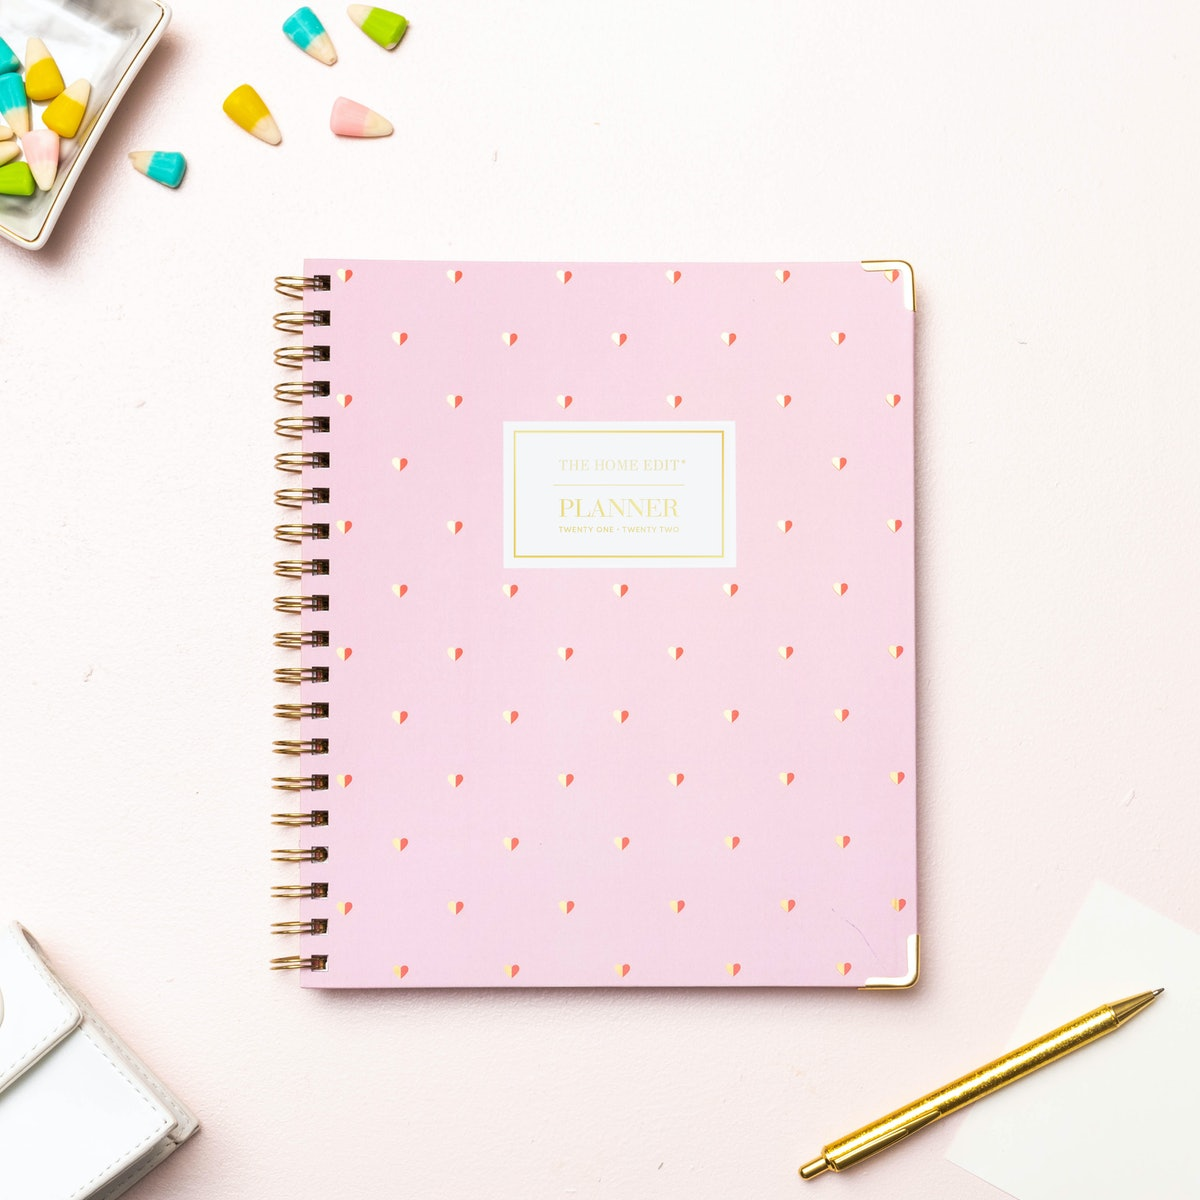 """2021-22 Academic Planner 6"""" x 8"""" Hard Cover Weekly/Monthly Wirebound Sweetheart - The Home Edit"""